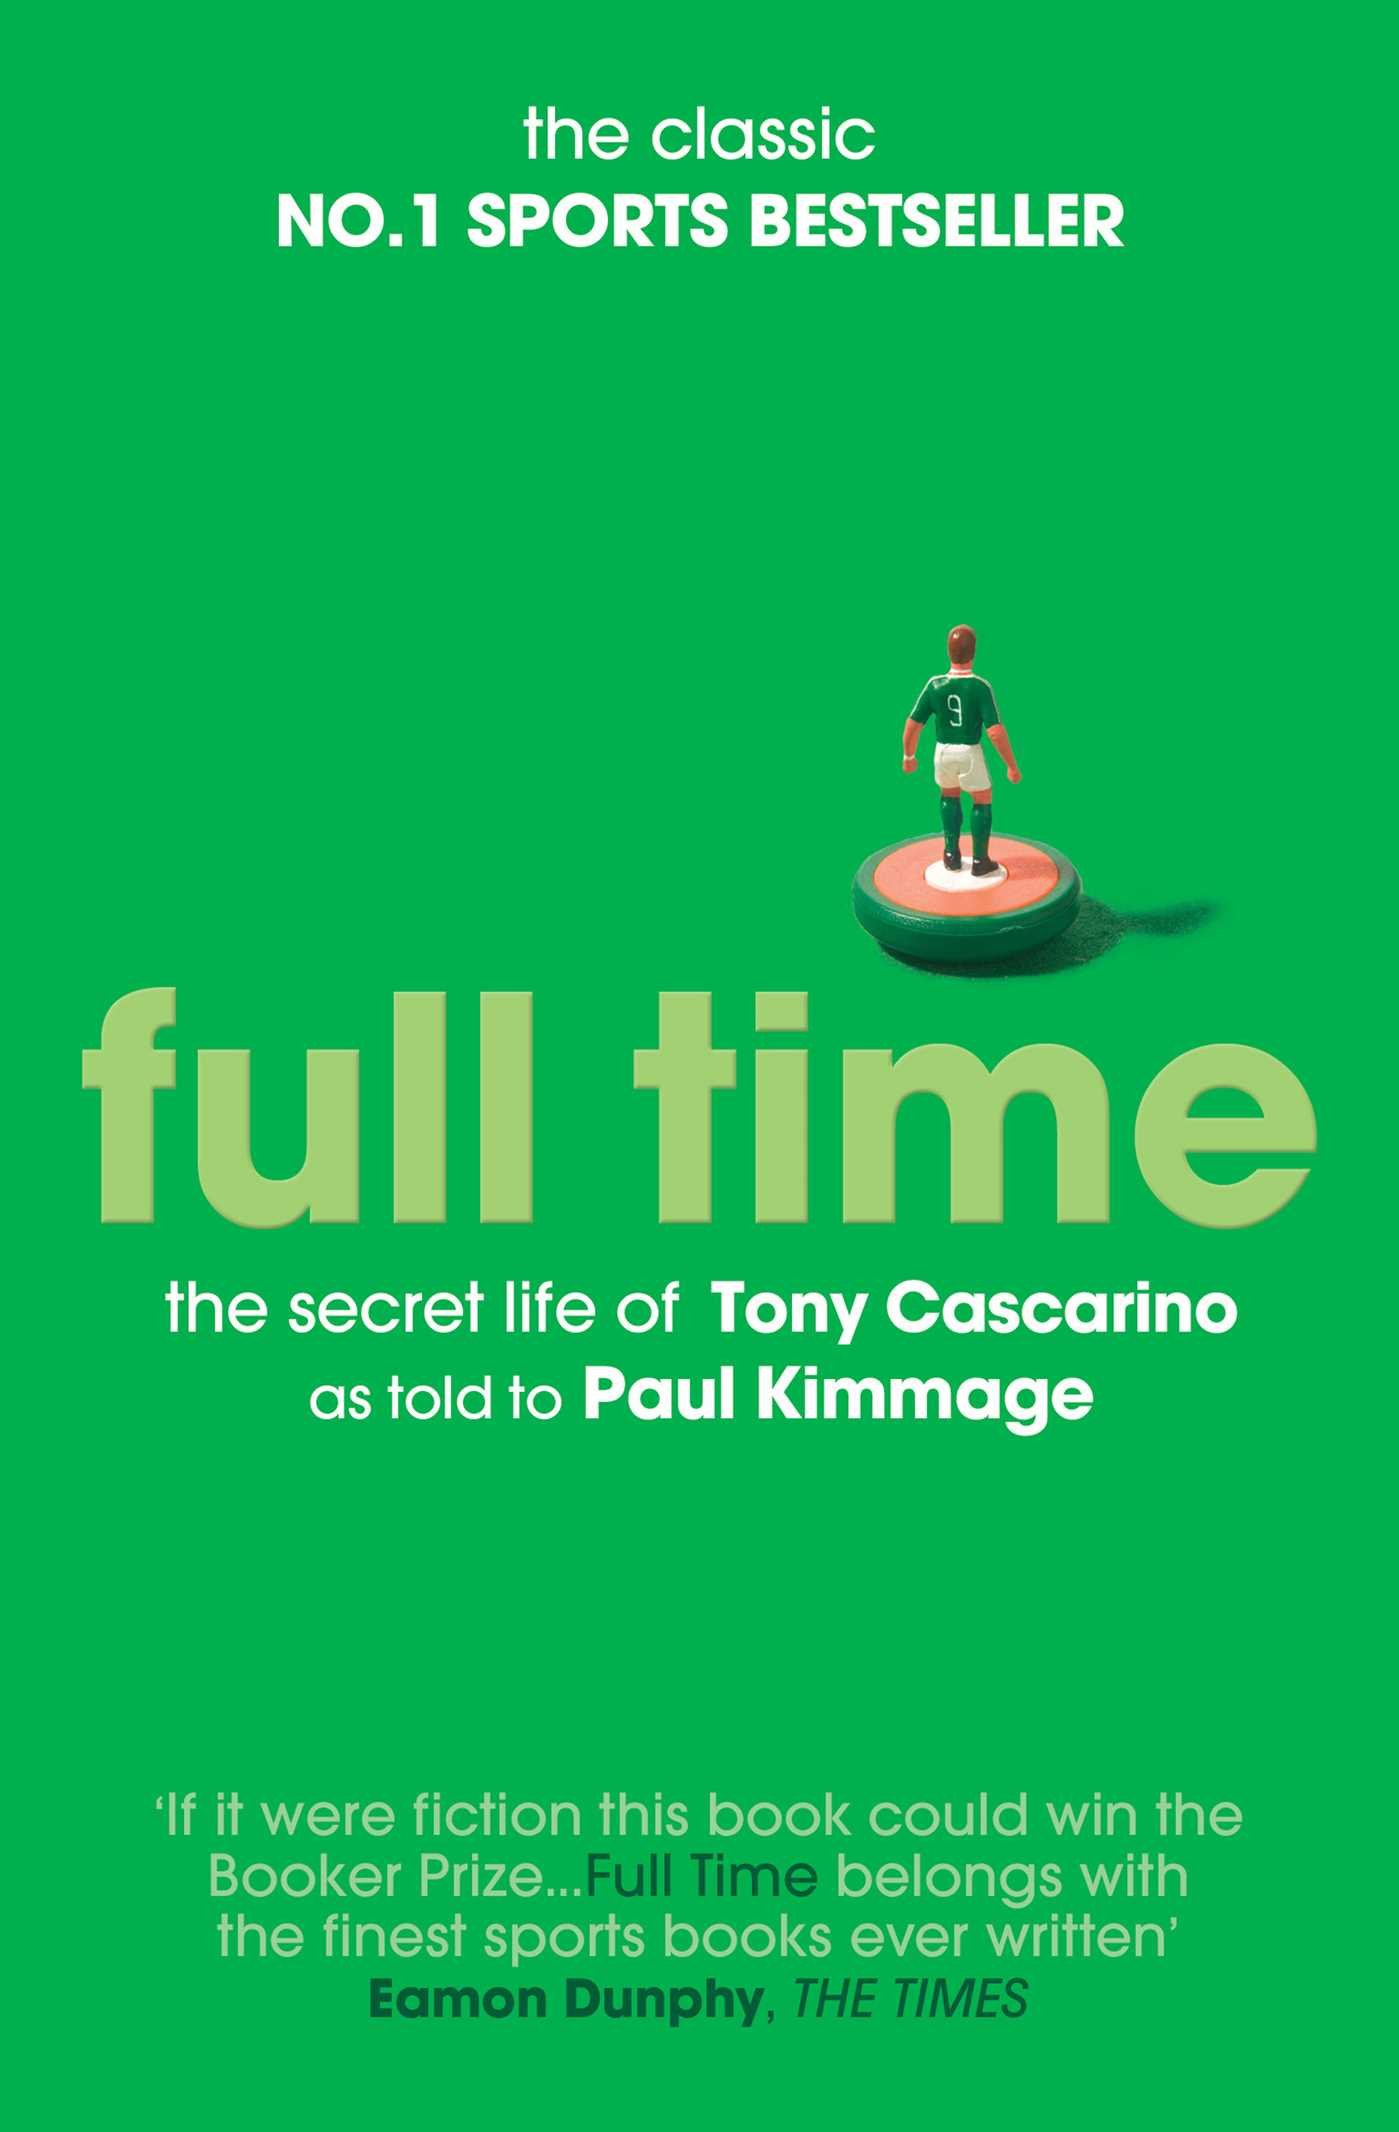 Amazon full time the secret life of tony cascarino amazon full time the secret life of tony cascarino 9781471110603 paul kimmage books fandeluxe Image collections